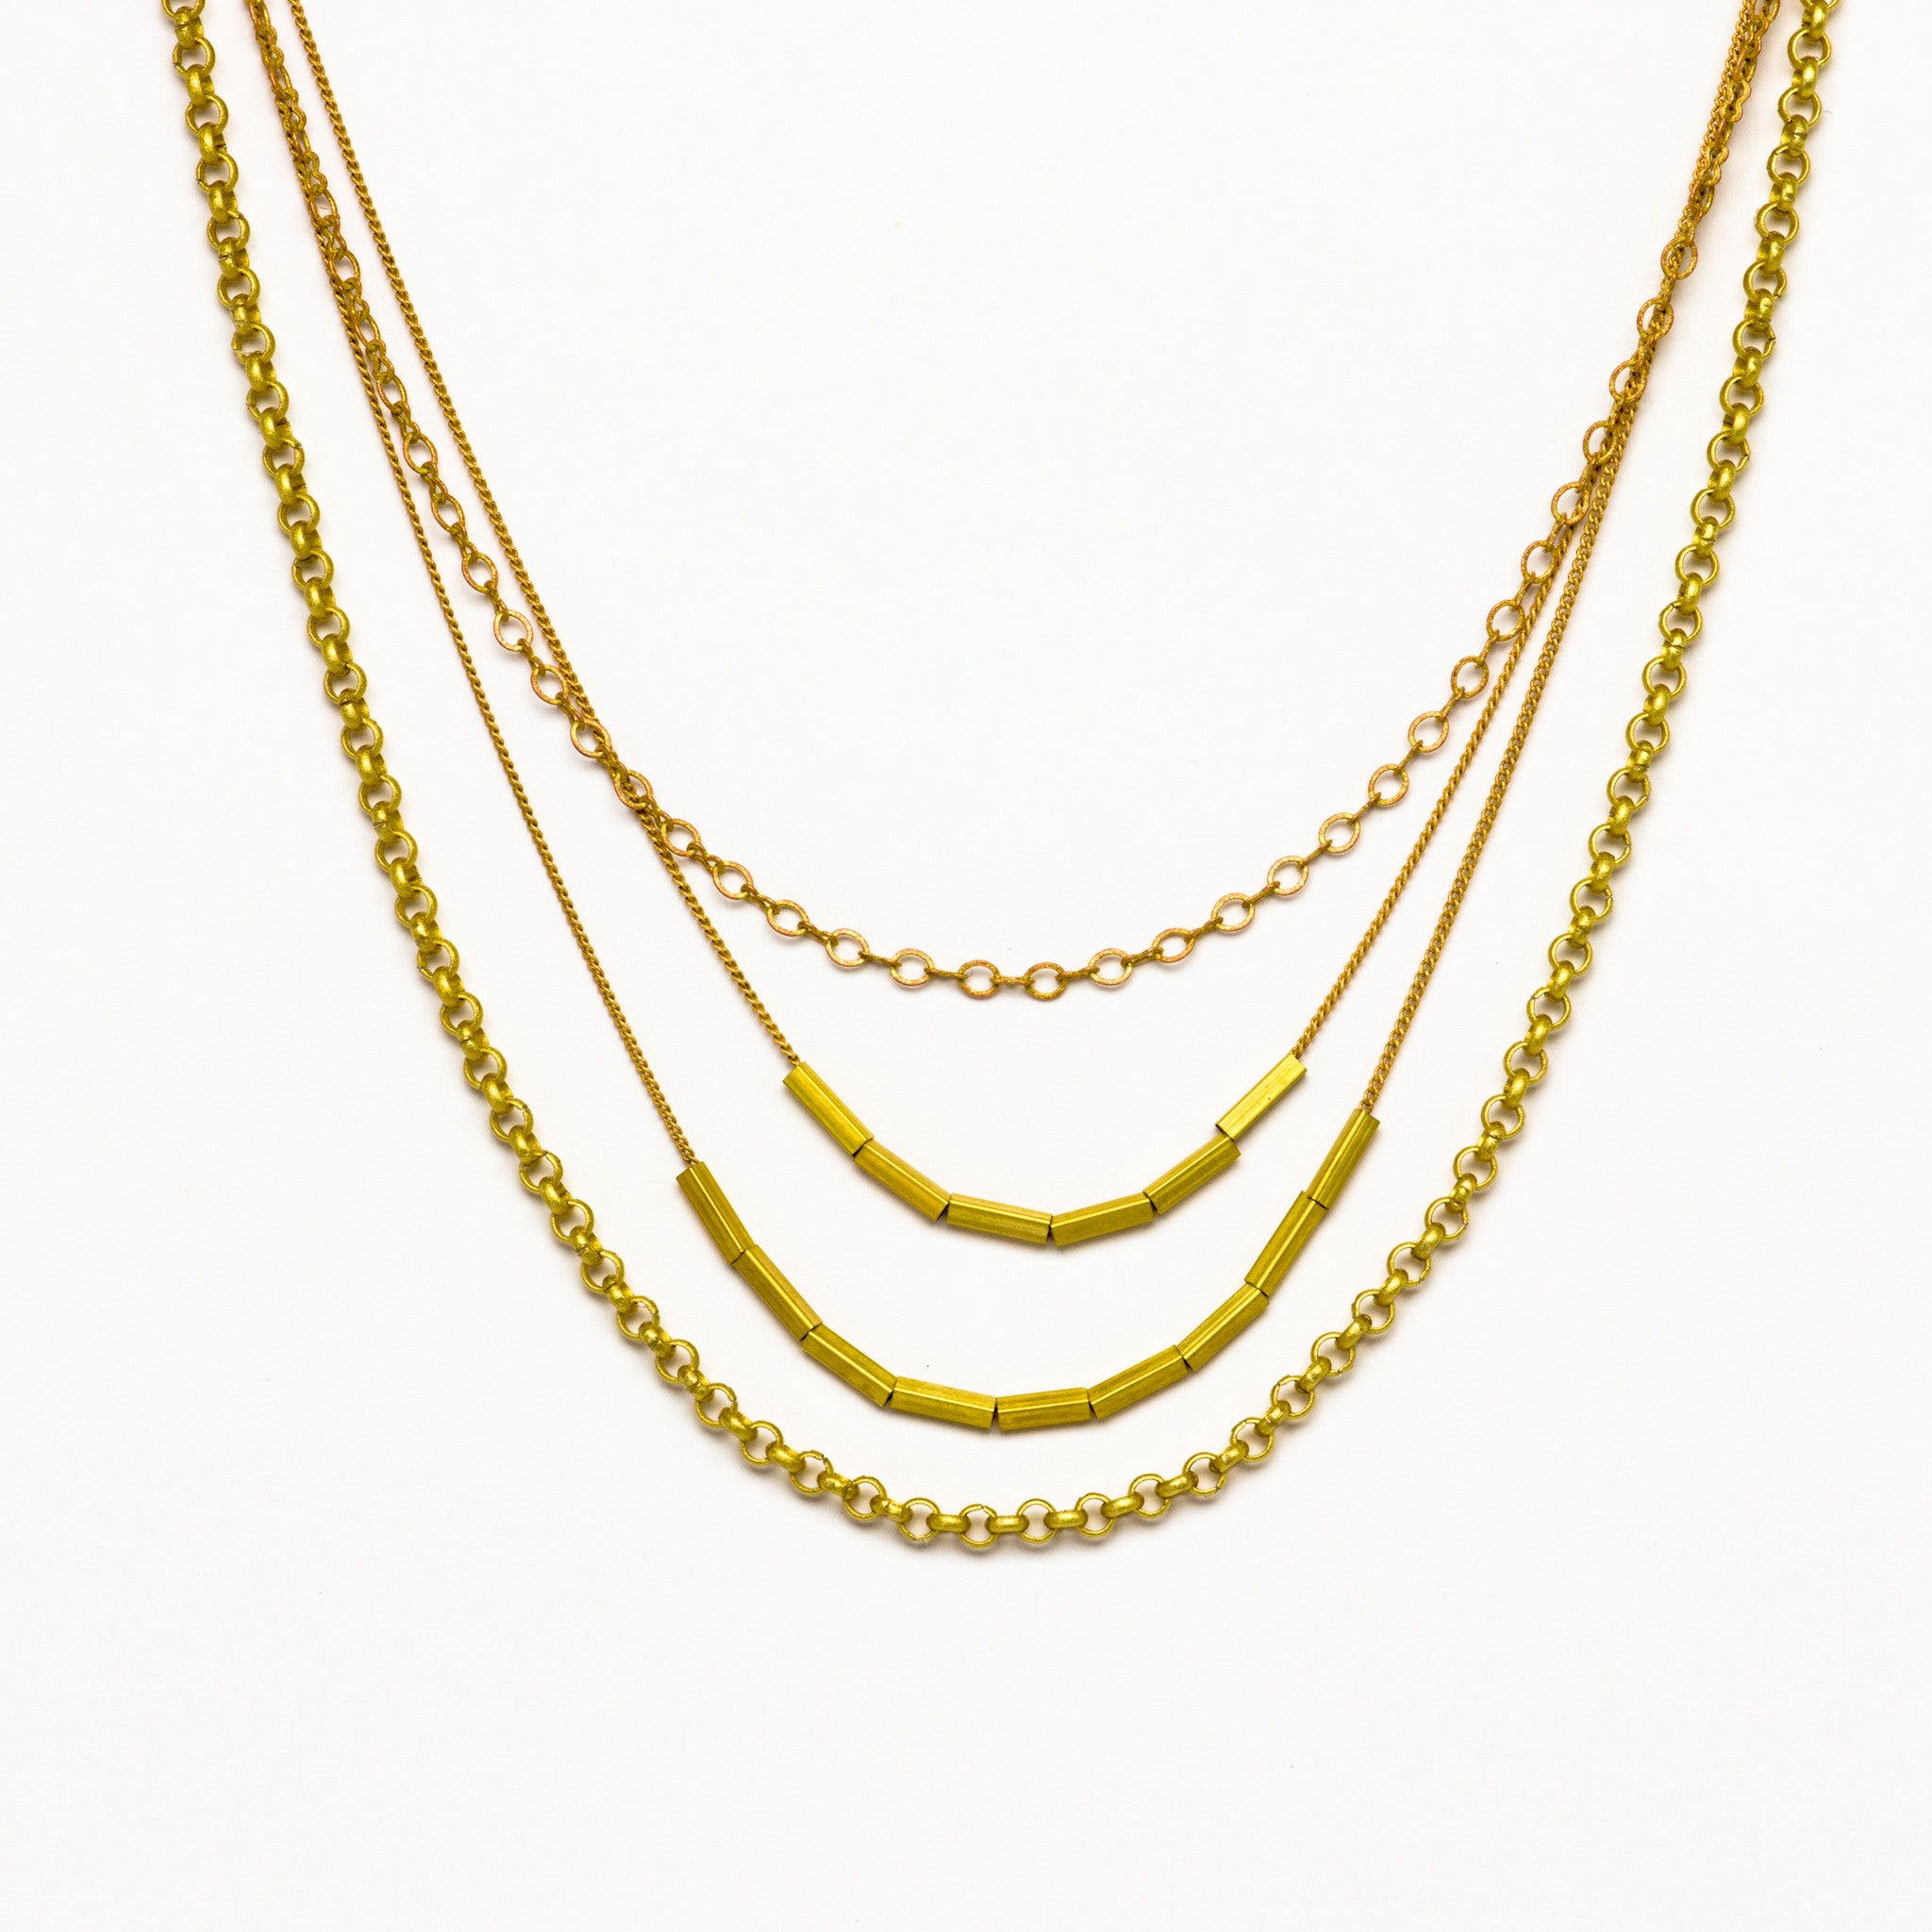 gold min jewels necklace long sokora sale product photo home nenna sets